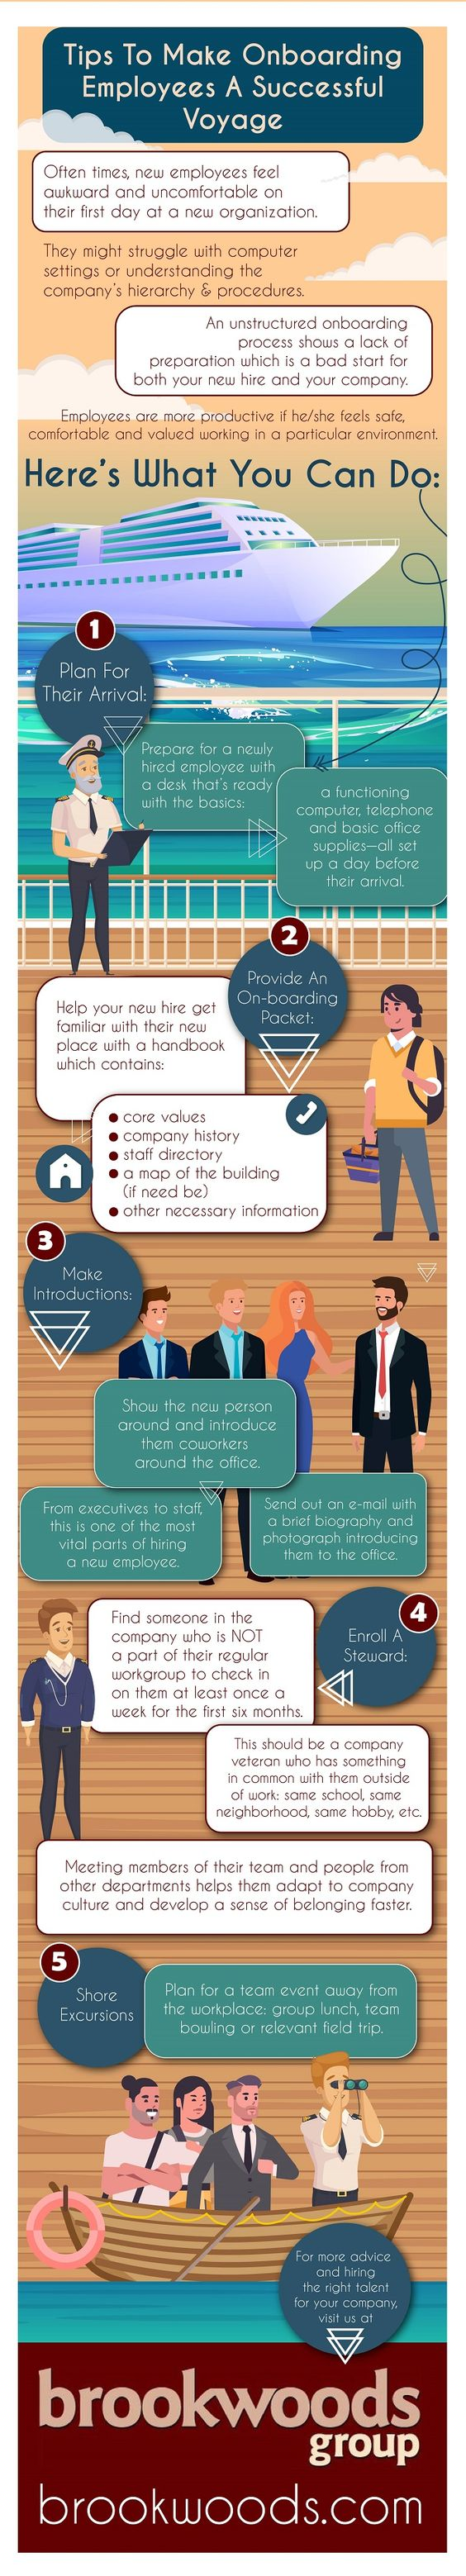 Tips To Make Onboarding Employees A Successful Voyage